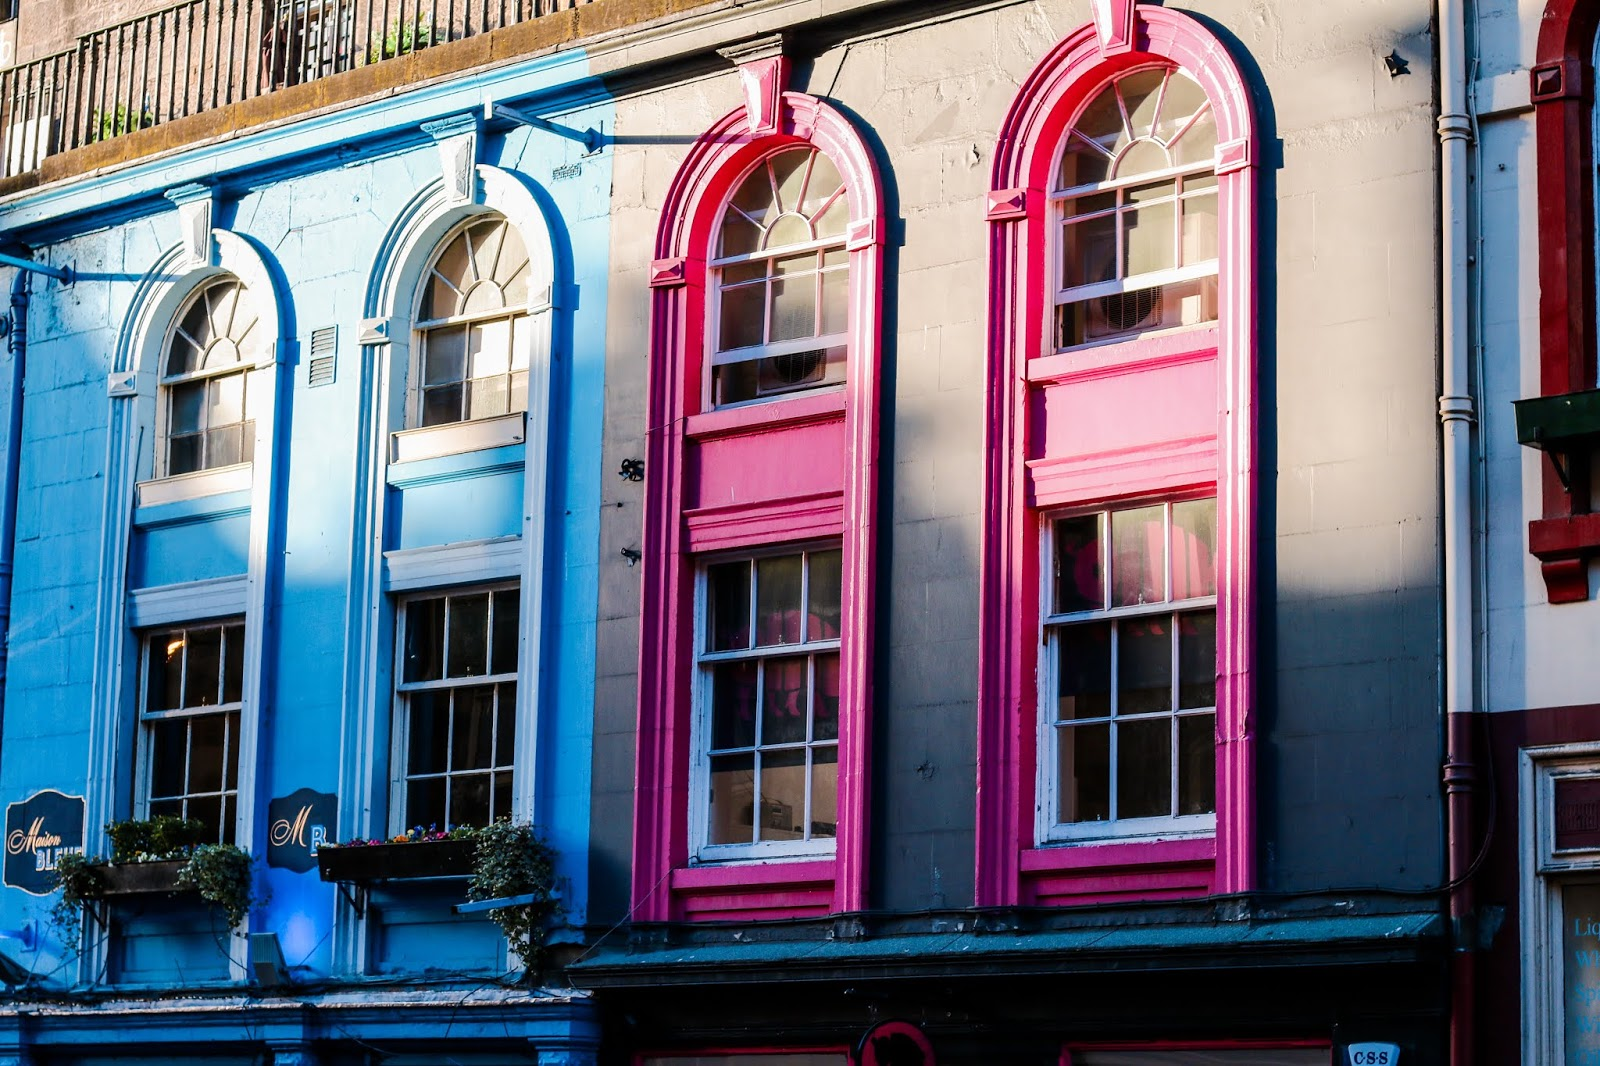 a close up of some windows in Edinburgh that are painted blue and pink